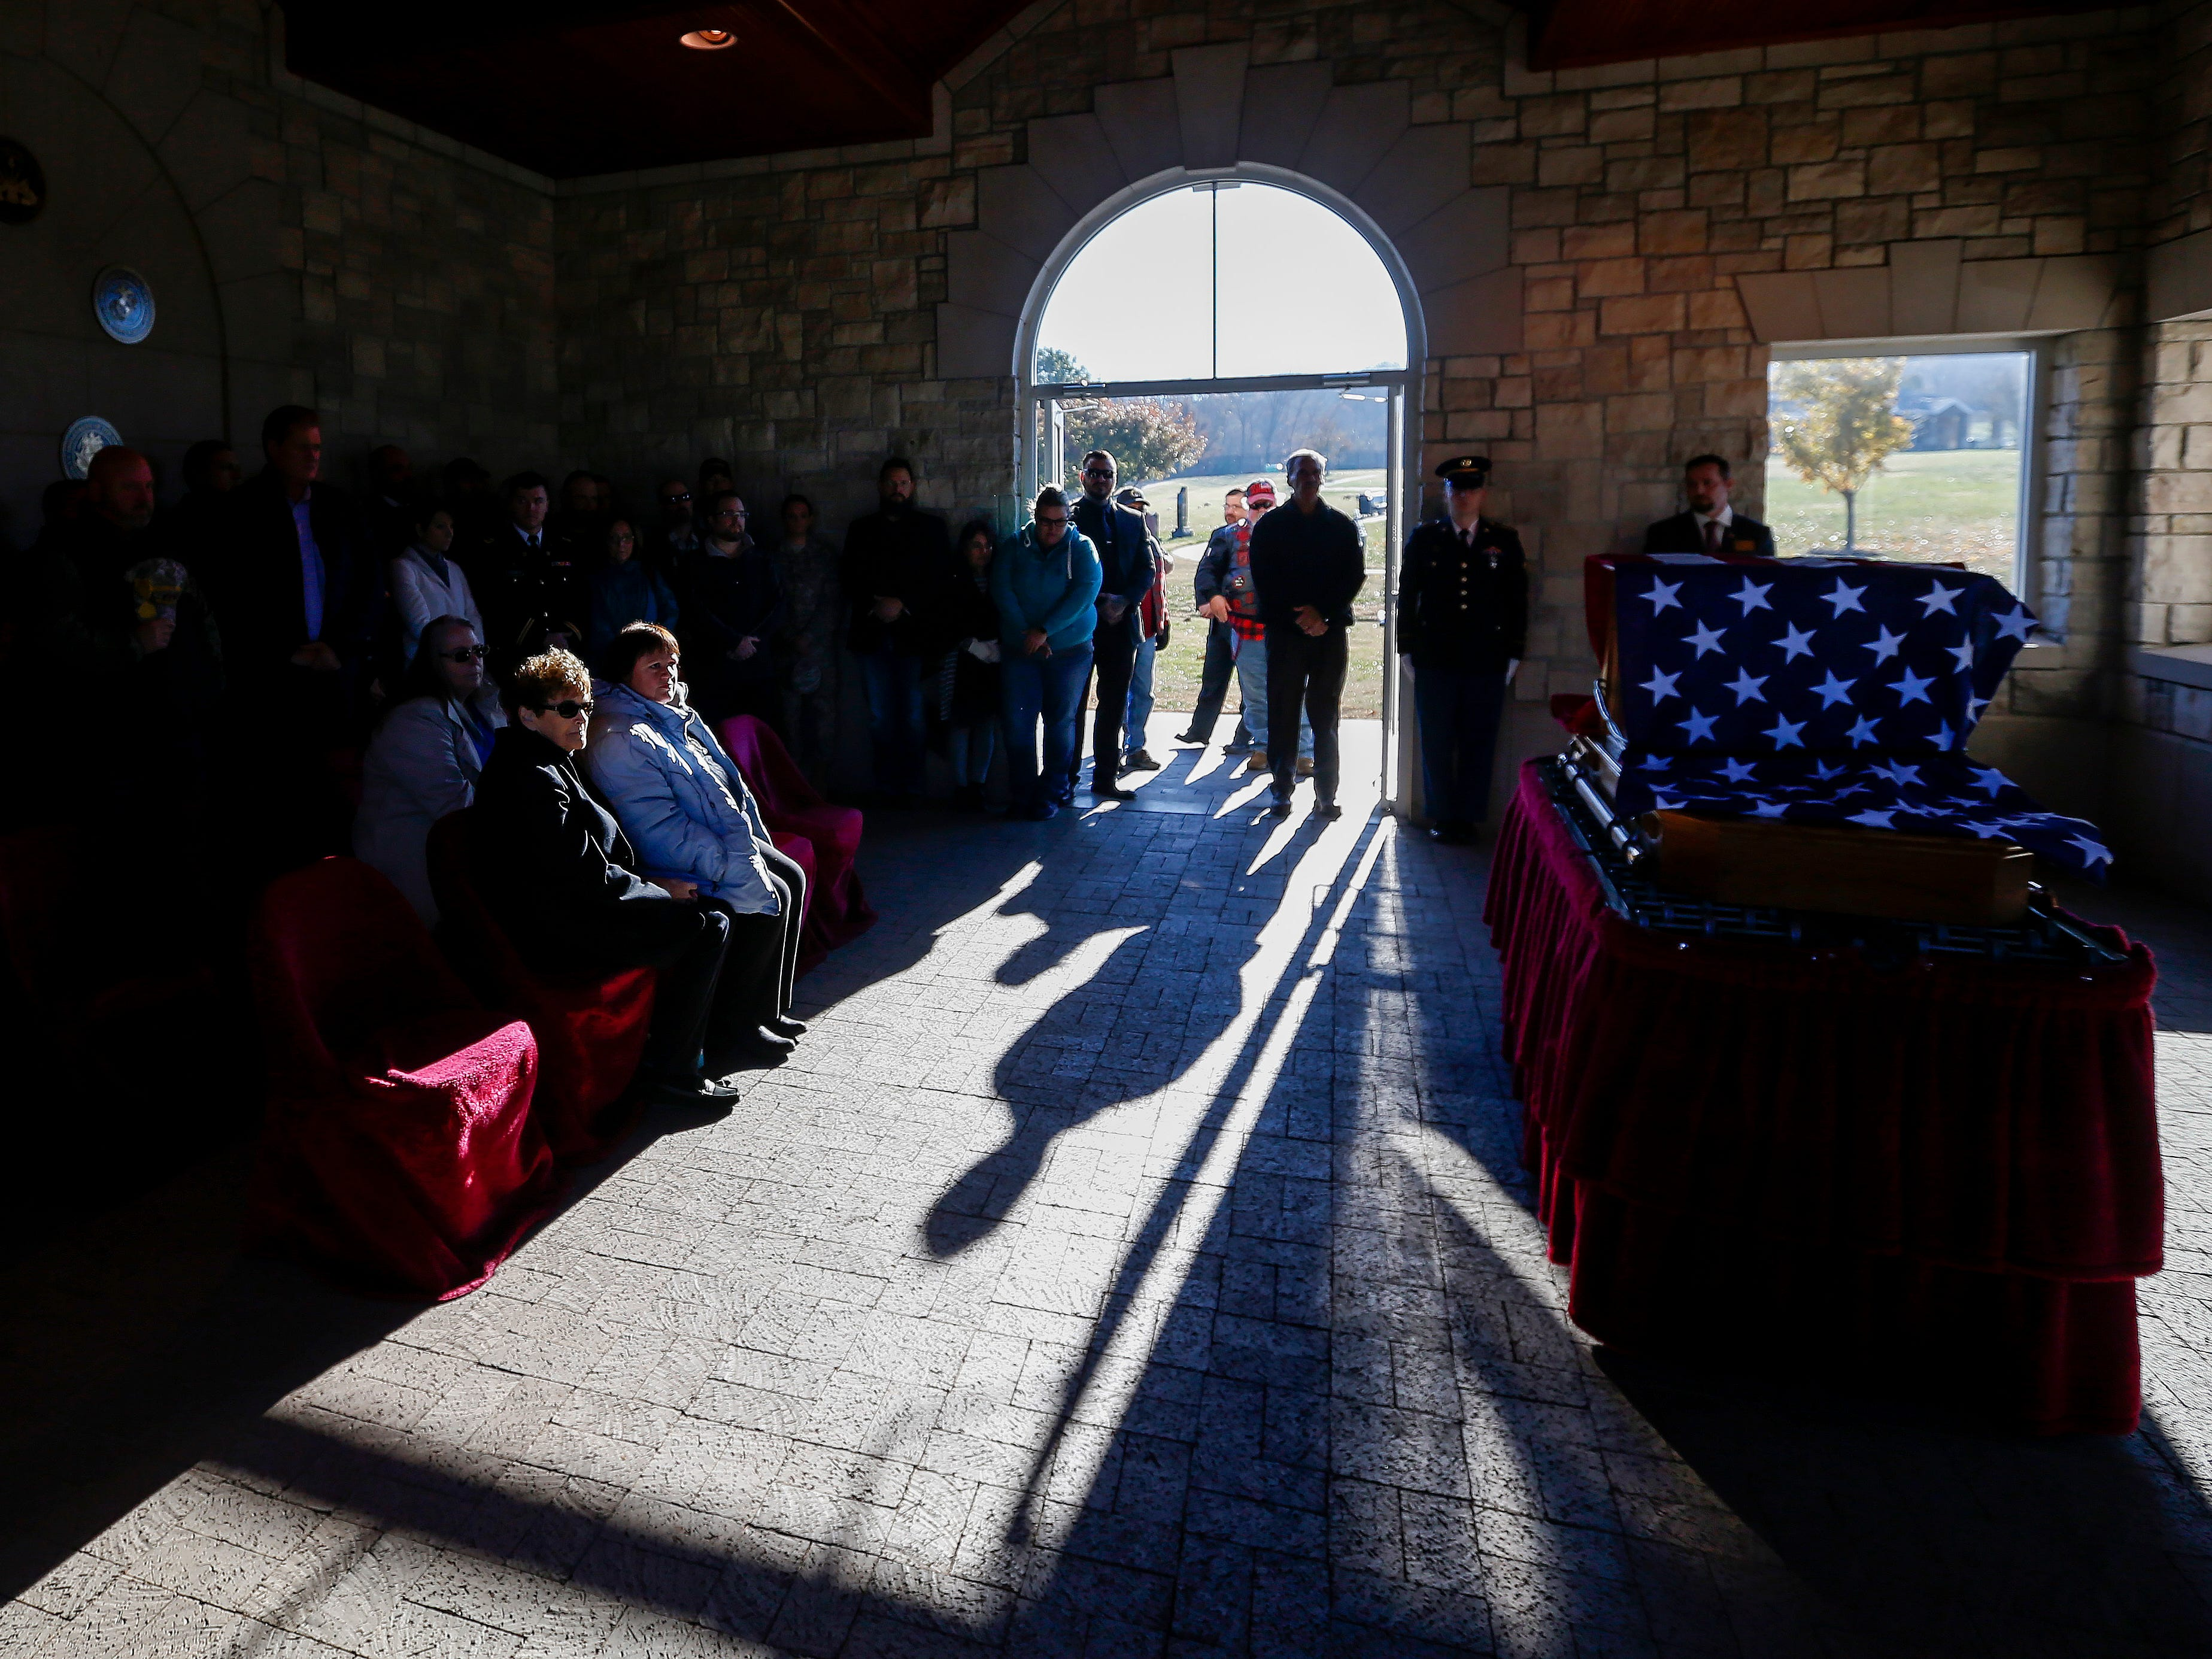 Veterans and members of the community filter into the chapel at the Missouri Veterans Cemetery during the funeral of Army veteran Michael Hiers on Friday, Nov. 16, 2018.